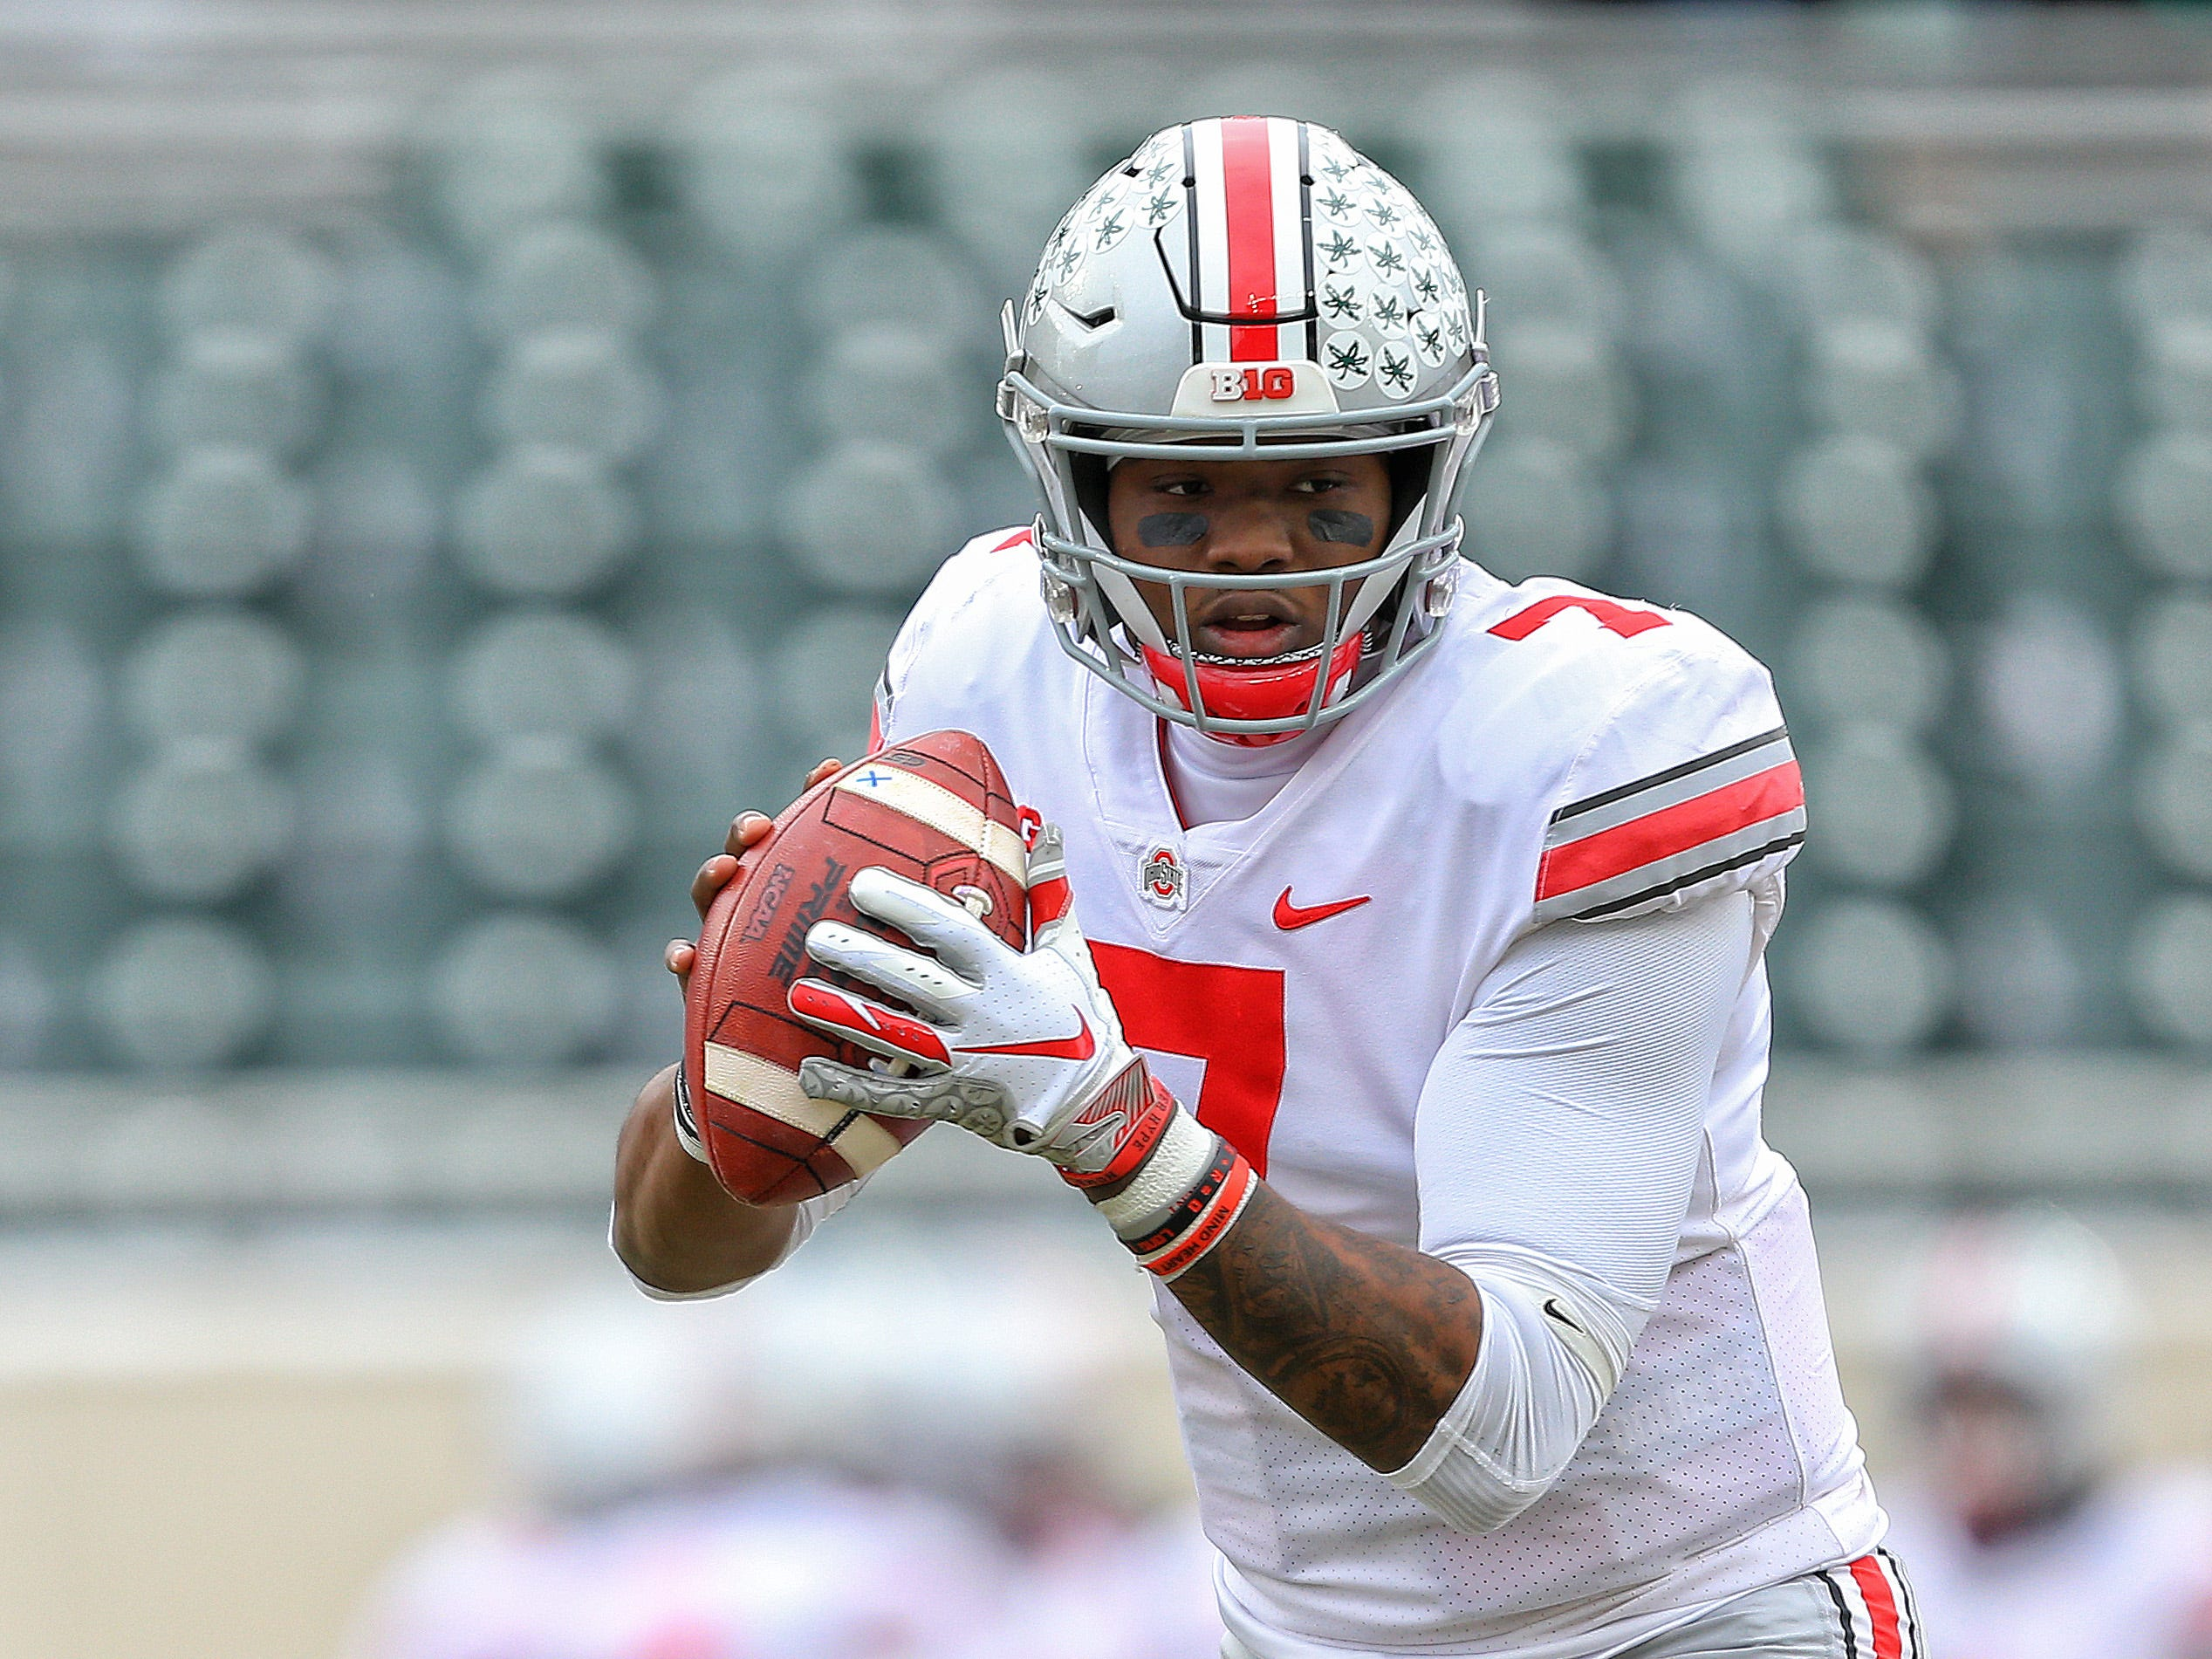 Ohio State Buckeyes quarterback Dwayne Haskins (7) warms up prior to a game against the Michigan State Spartans at Spartan Stadium.